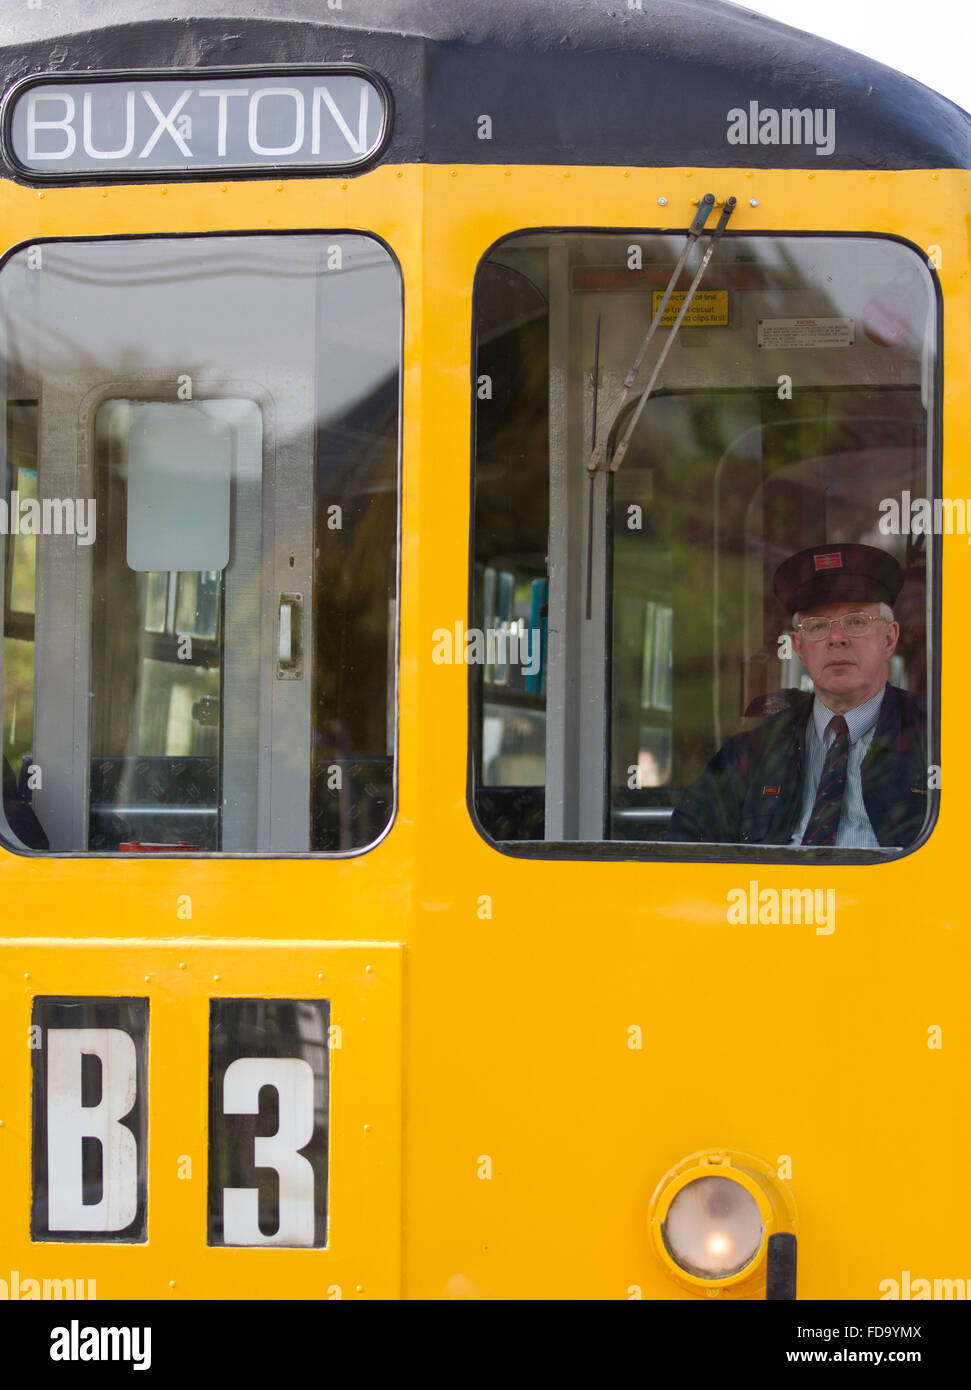 A re-enactment of the 1960's as the British Rail diesel railcar driver waits for the signal to depart. - Stock Image